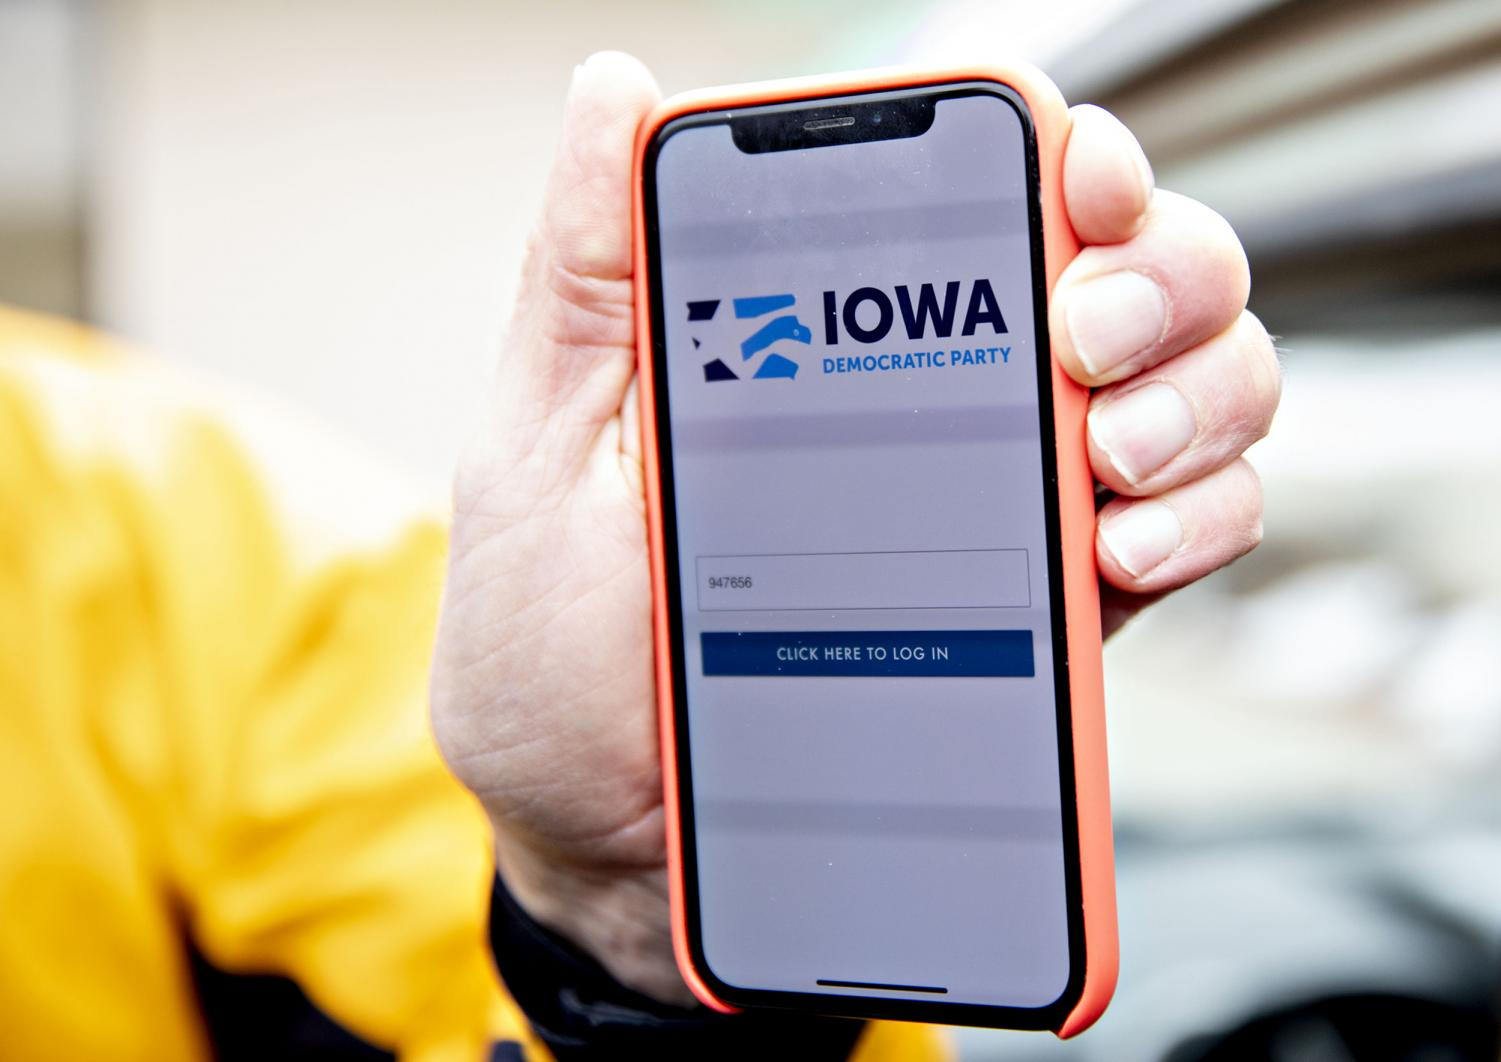 During the Democratic portion of the Iowa Caucus, the app shown on the smartphone in the image was used to try to efficiently collect results.